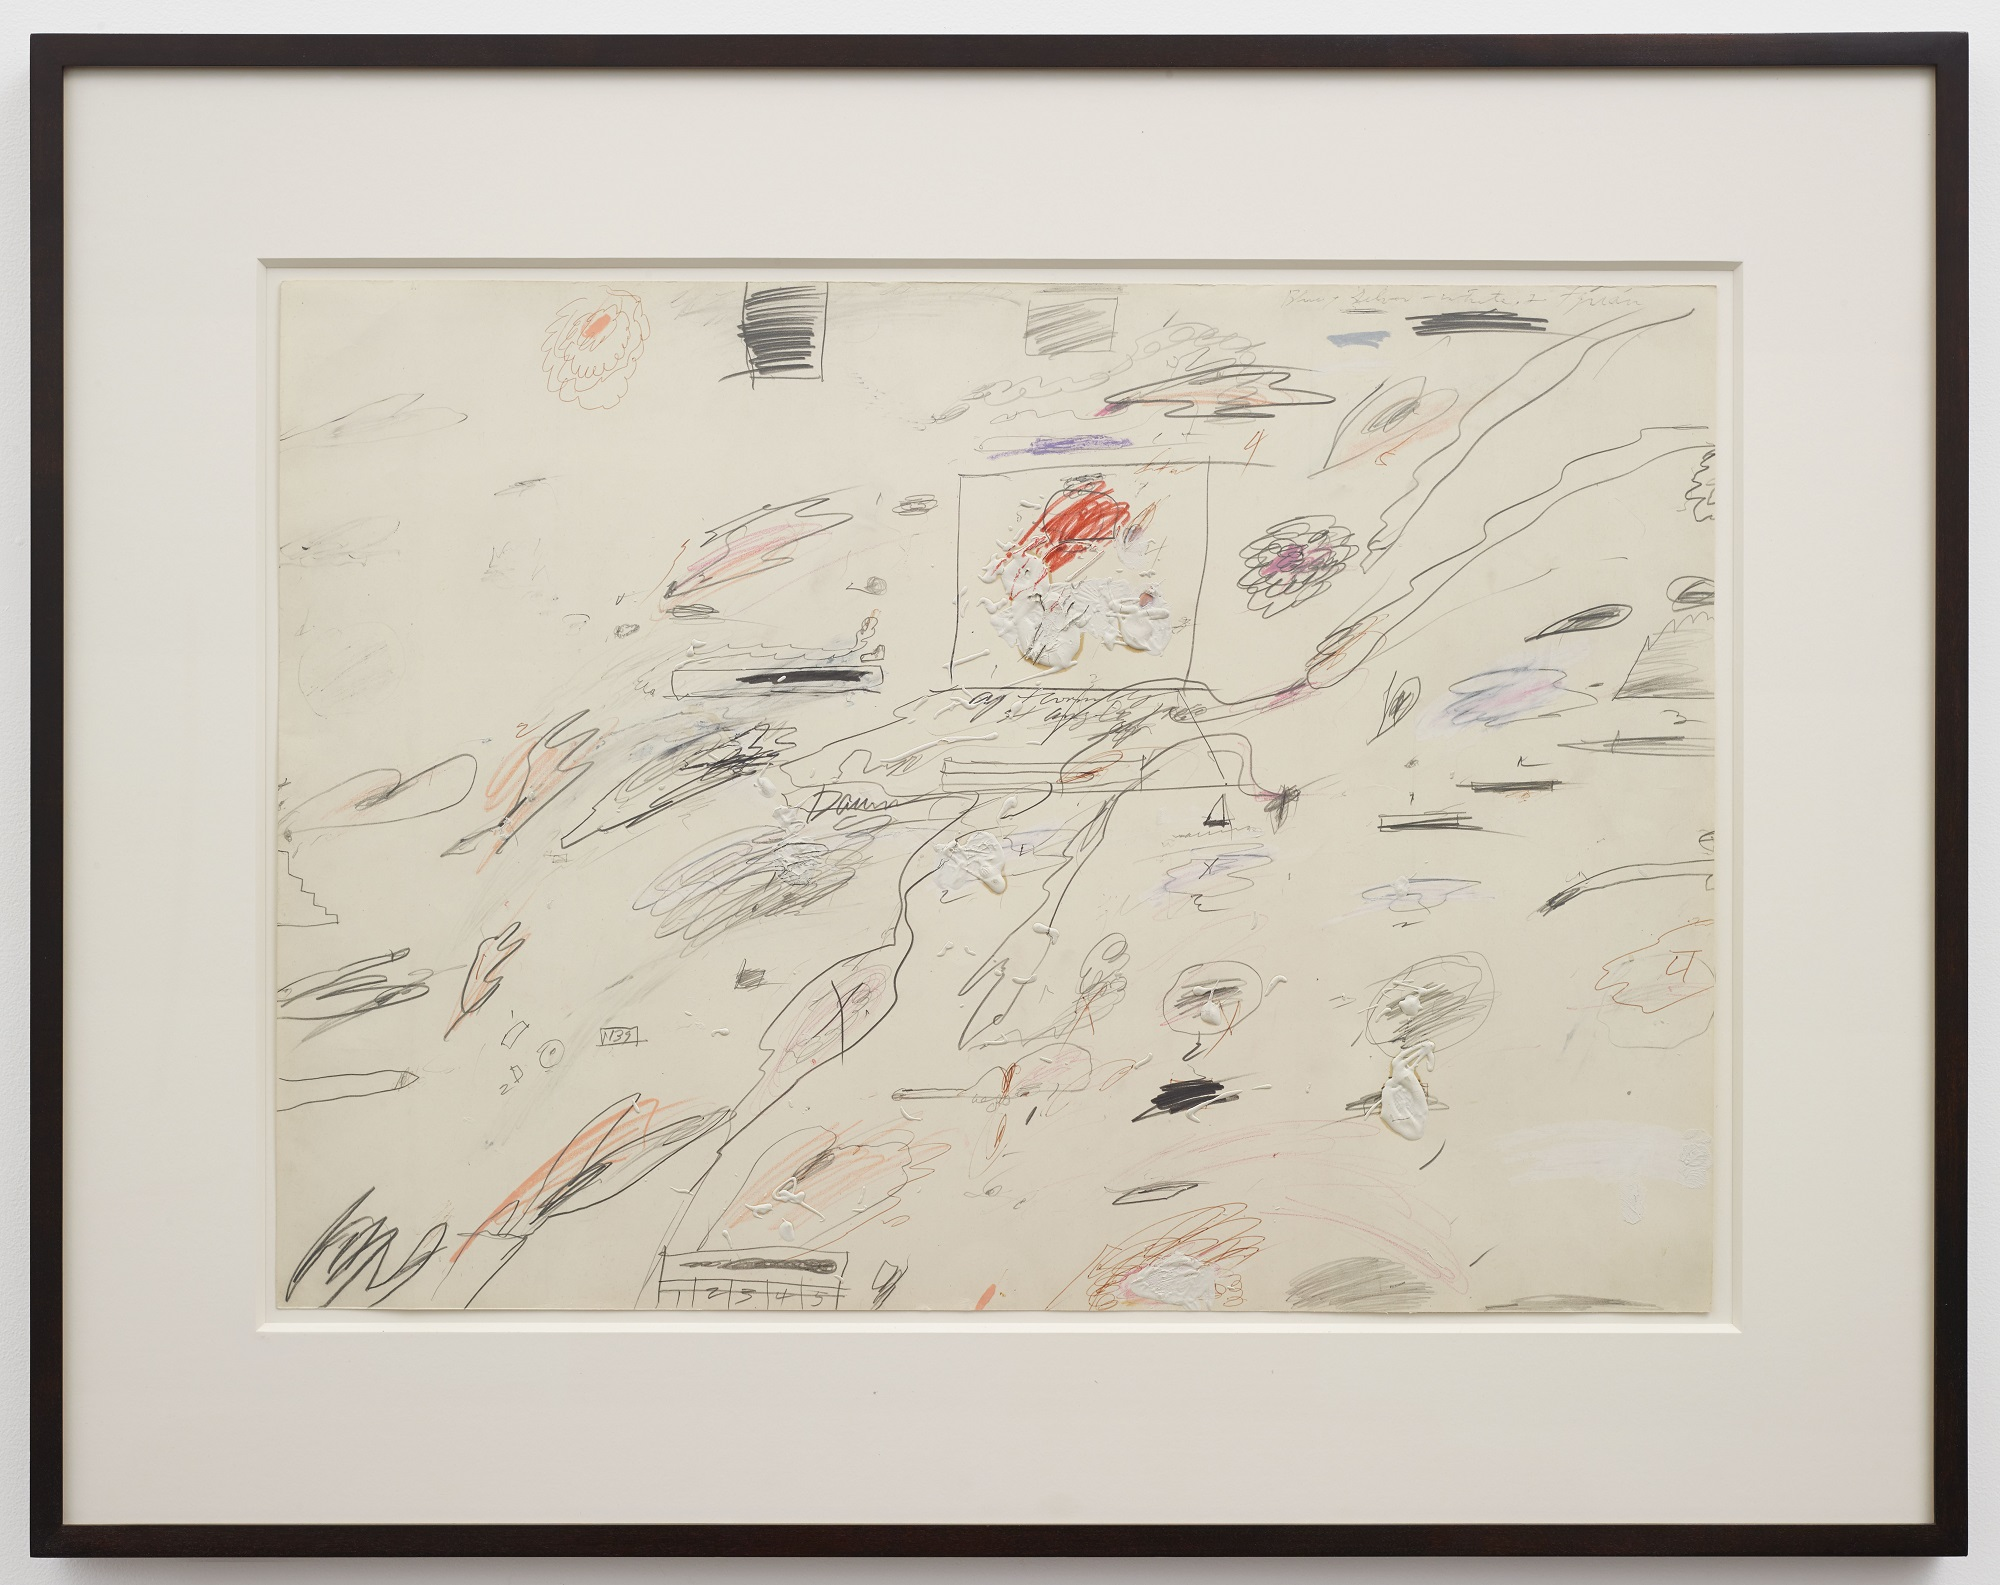 Cy Twombly Untitled, 1960. Pencil, oil-based house paint, wax crayon, and ballpoint pen on paper. 19 5/8 x 27 1/2 inches (50 x 70cm) © 2015 Cy Twombly Foundation